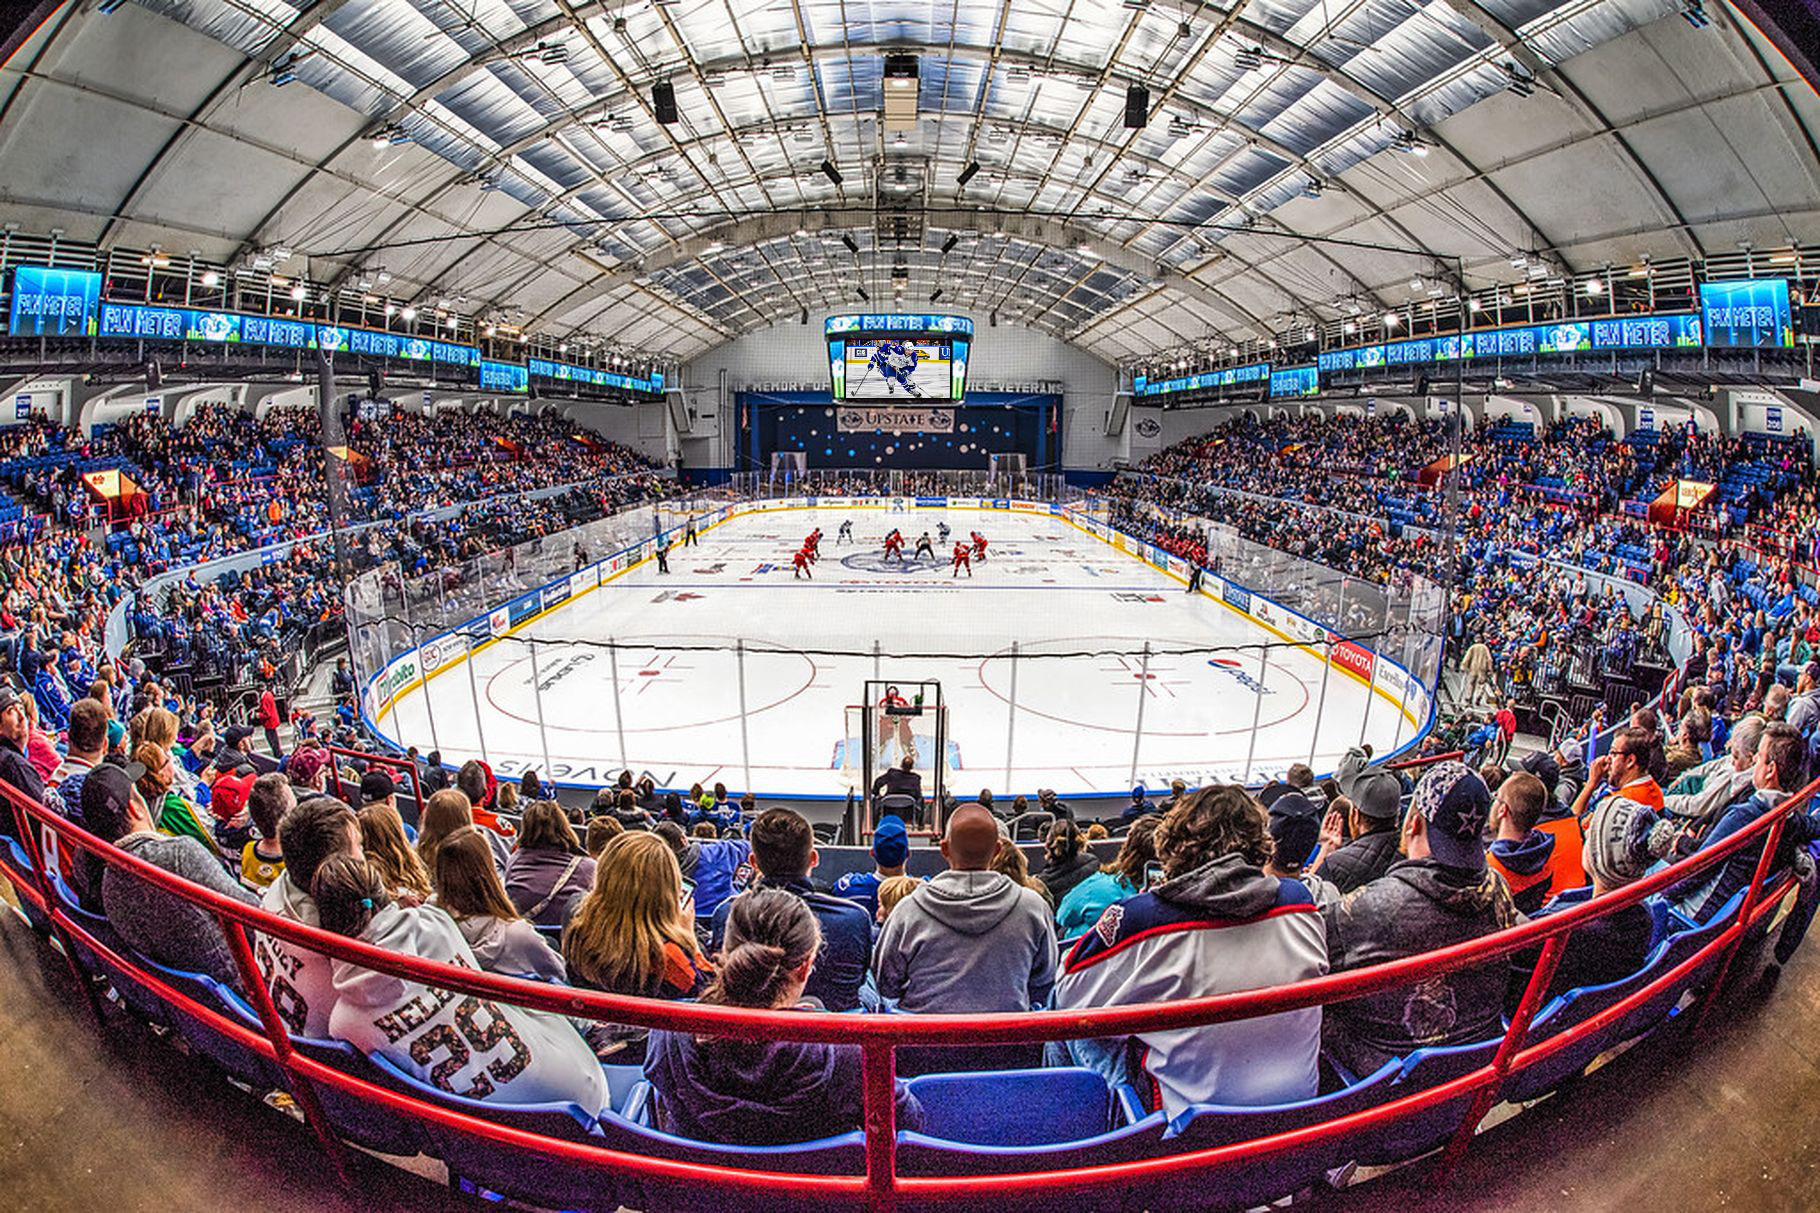 Syracuse Crunch, Control Room Broadcast Cabling, Cabling infrastructure, structured cabling, LED display, videoboard, scoreboard, center hung, centerhung, center-hung, AHL, hockey, American Hockey League, marquee, arena LED, screens, scoreboard, video control system, IPTV, AJP